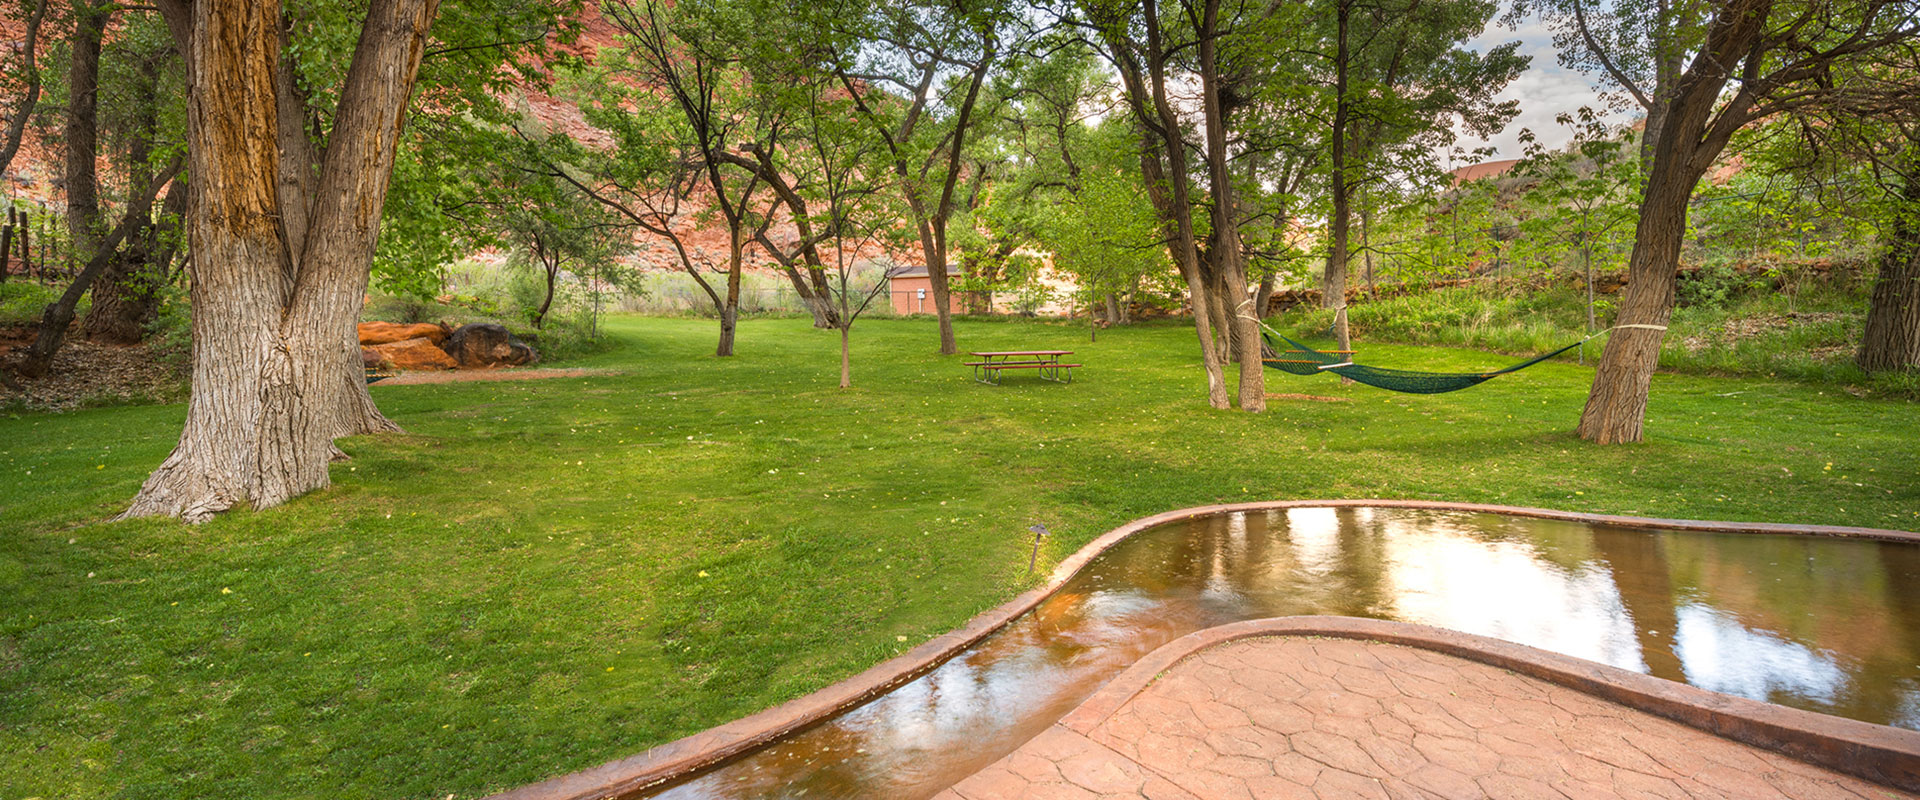 A white loveseat swing set, made of wood slats is set against the background of a ranch style fence and the looming sandstone mountain cliffs of Moab, Utah.